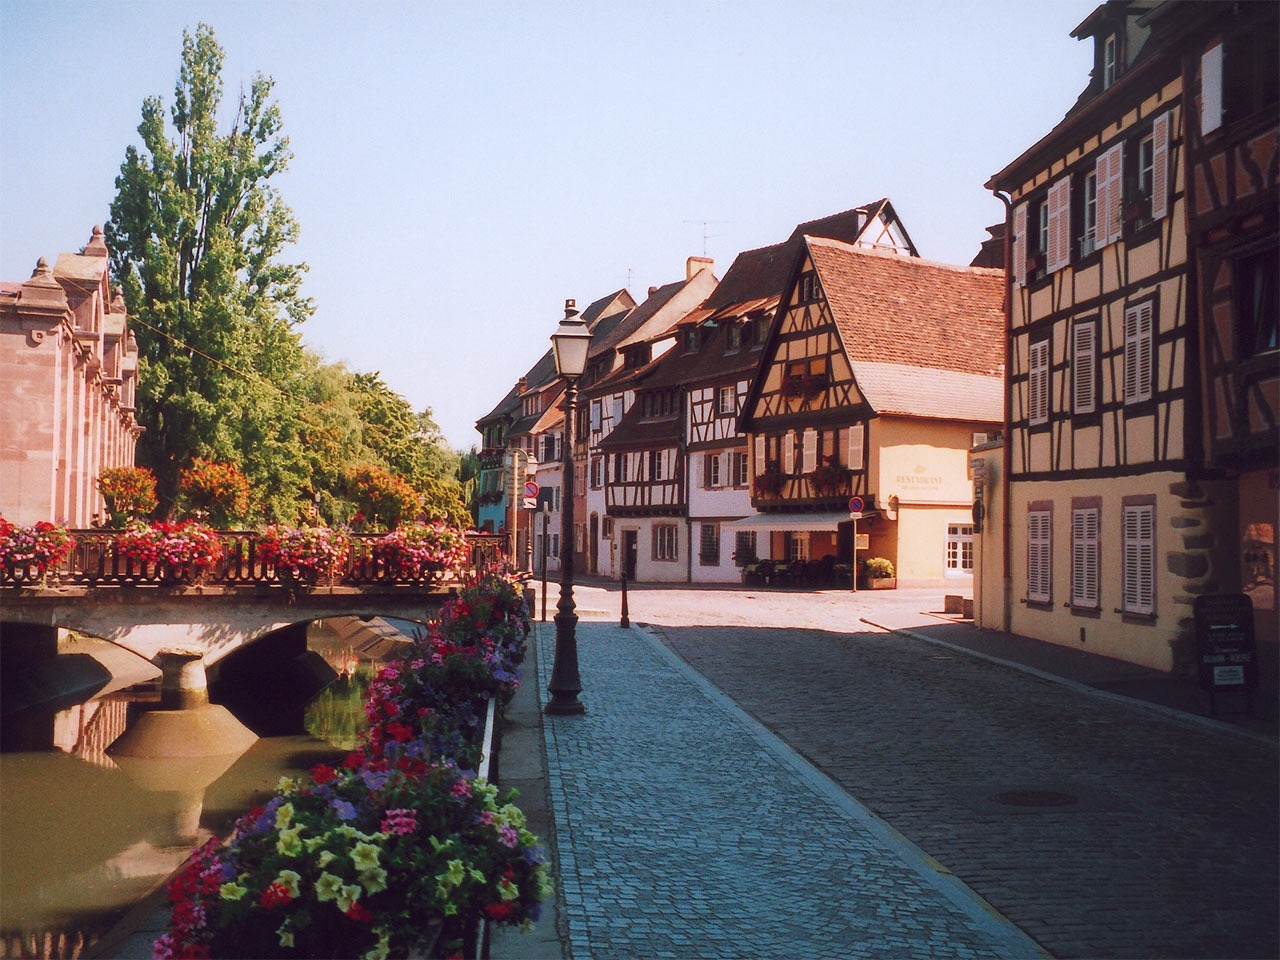 Hotel saint martin colmar a hotel full of history in colmar for Designhotel elsass